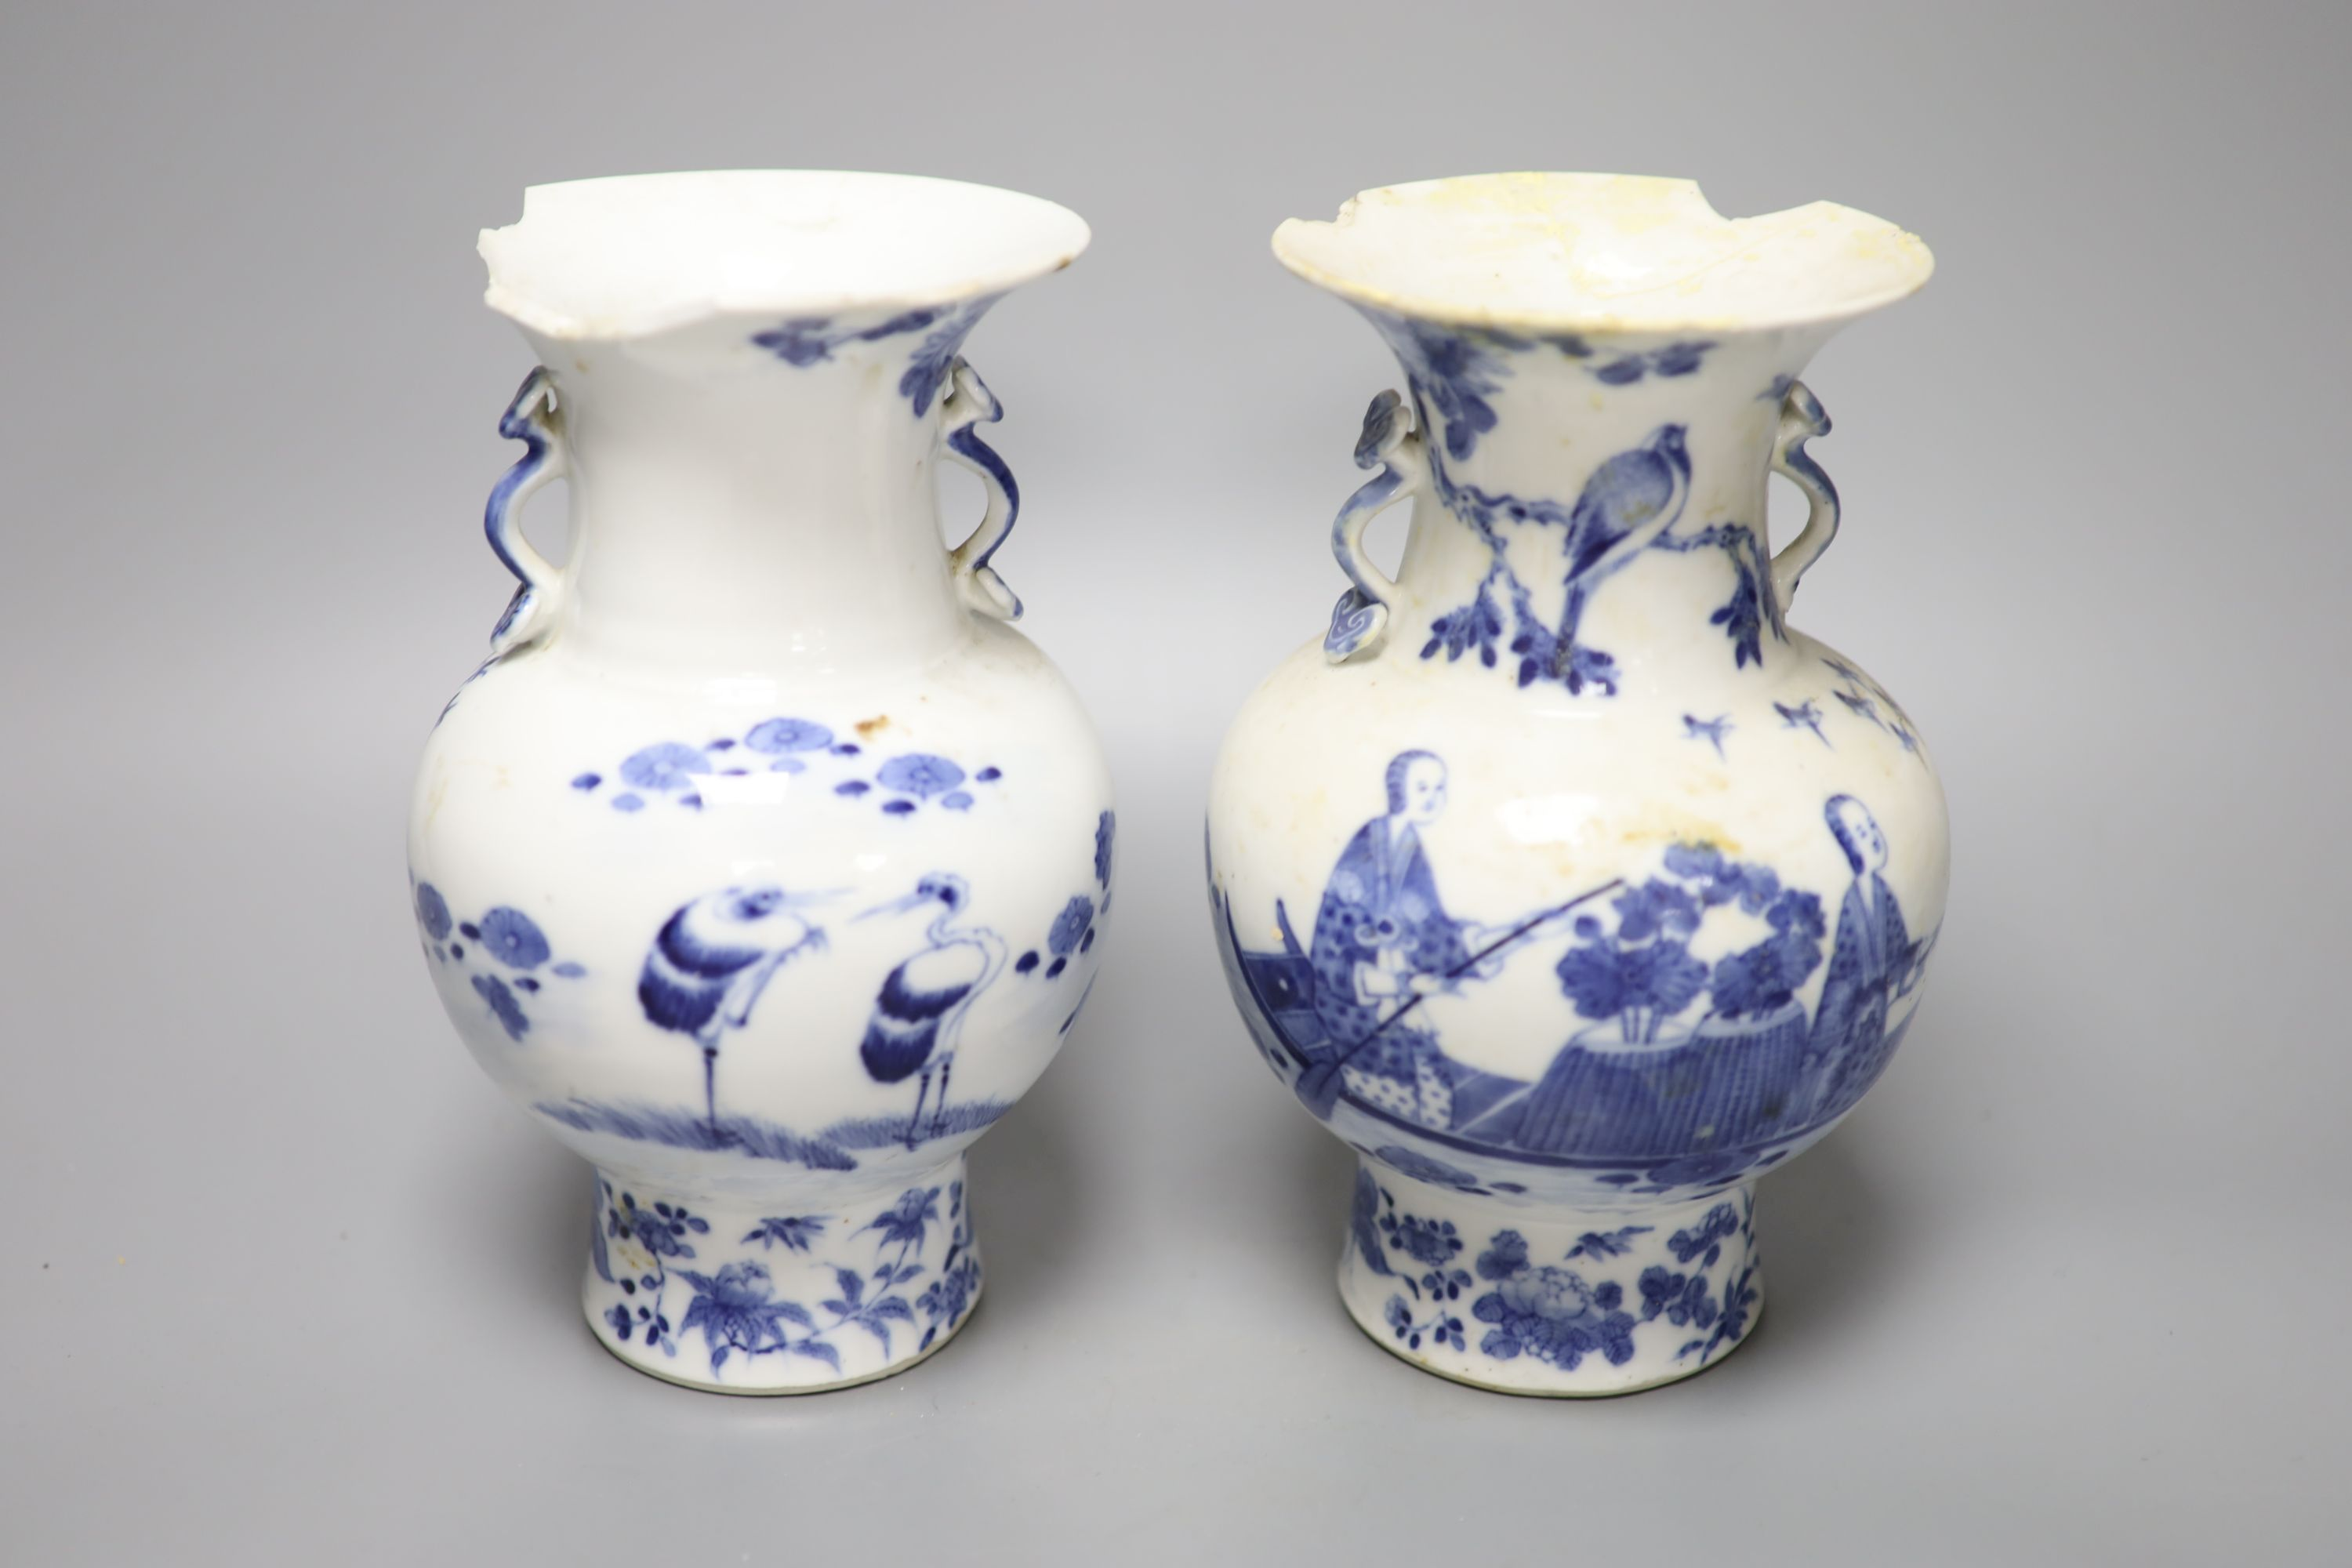 A pair of 19th century Chinese blue and white vases (a.f.), 23cm high - Image 2 of 6